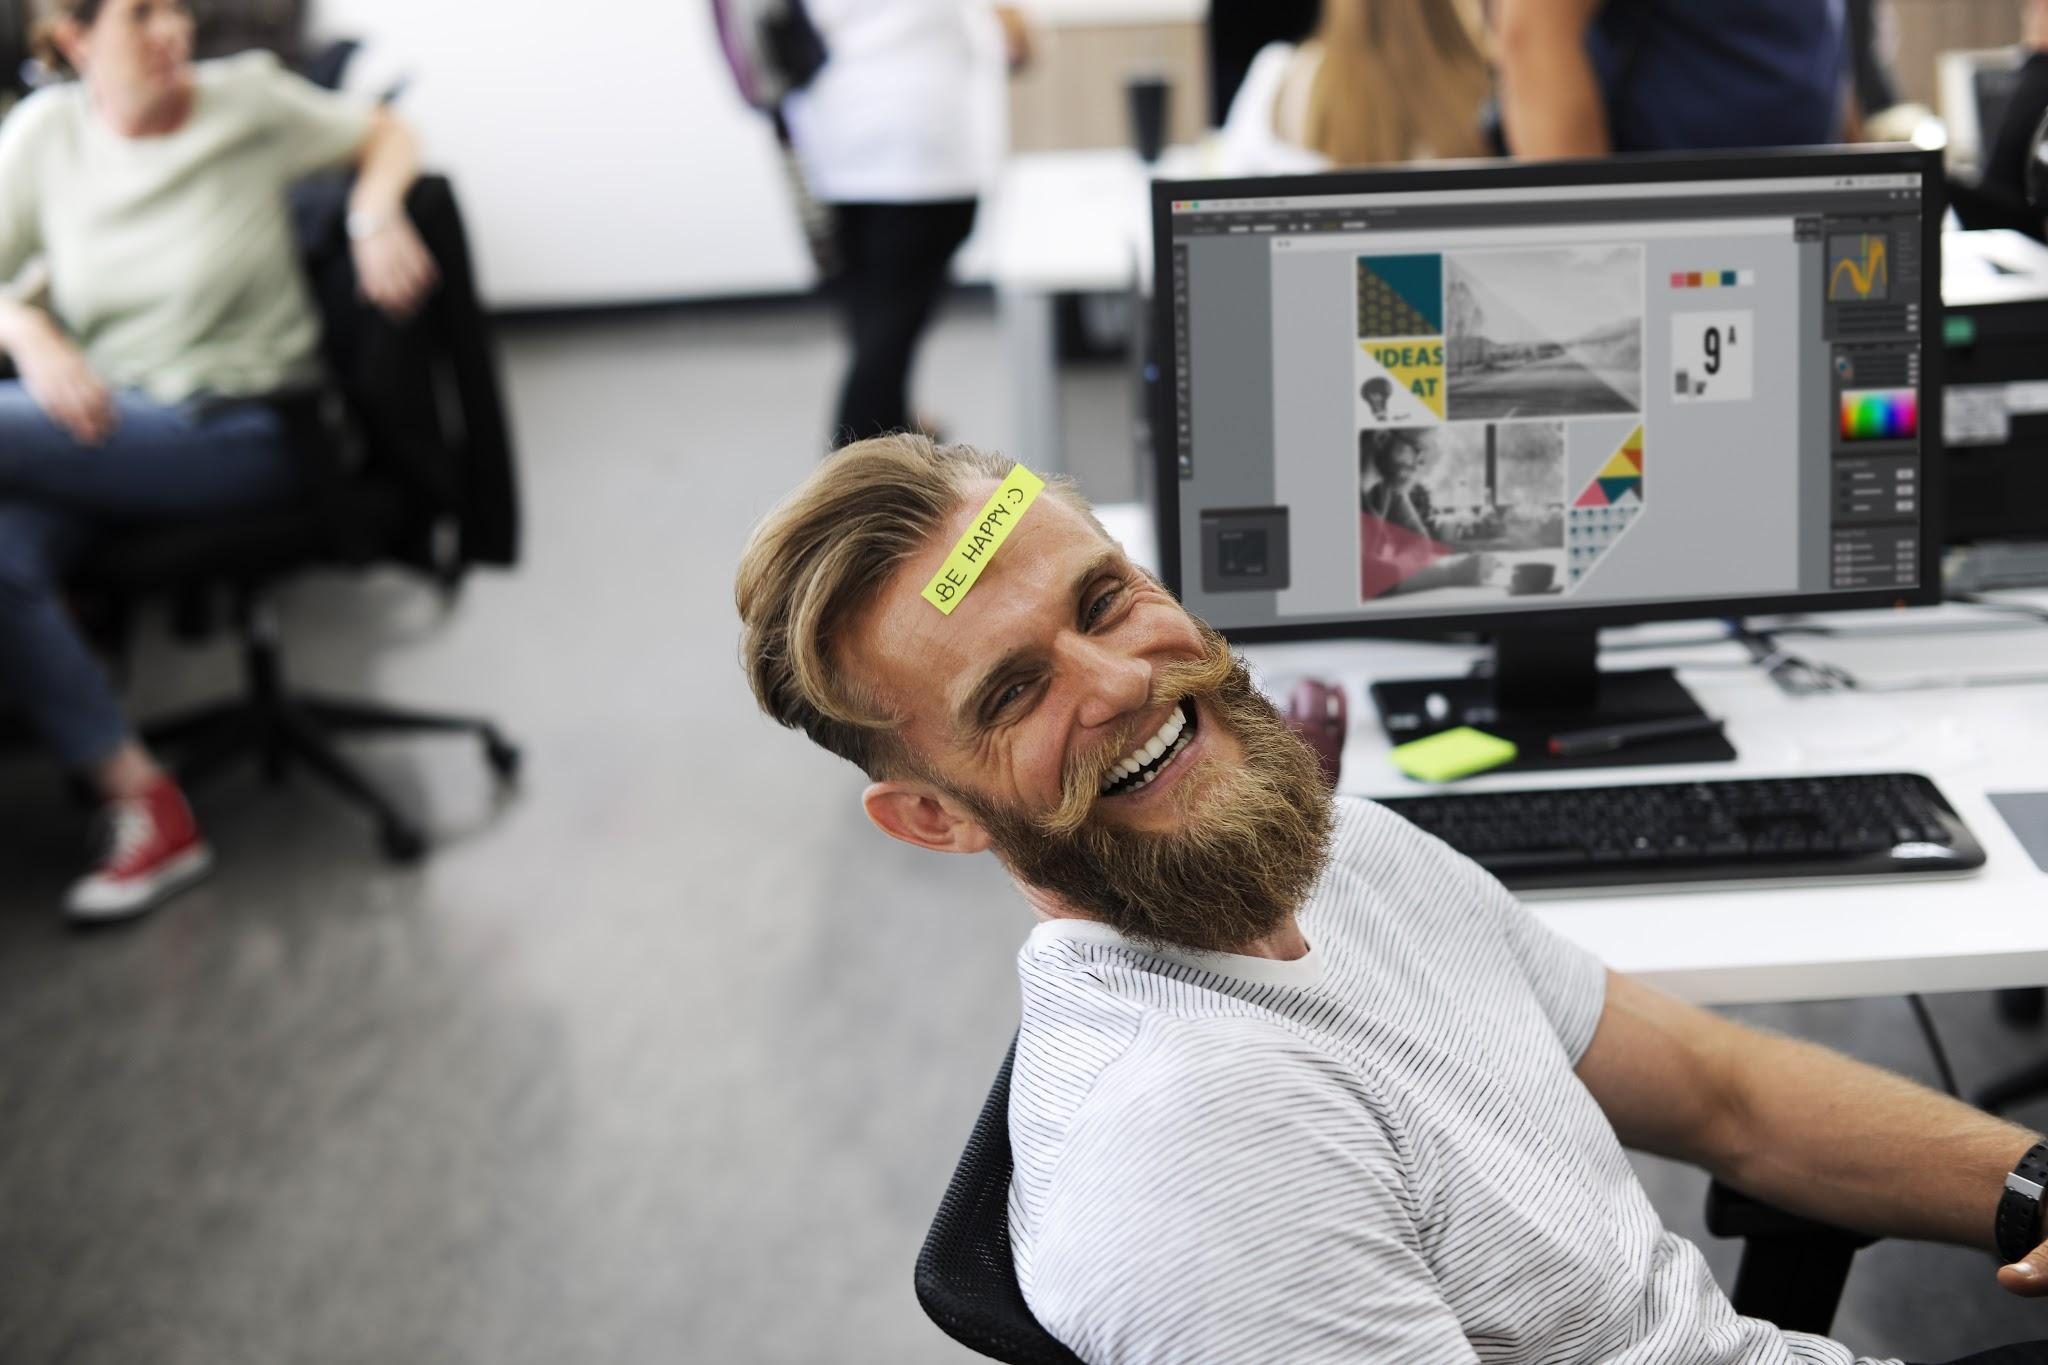 Pleskj shows how to keep clients happy when you're running a digital agency. Check outthis guy's happy face.